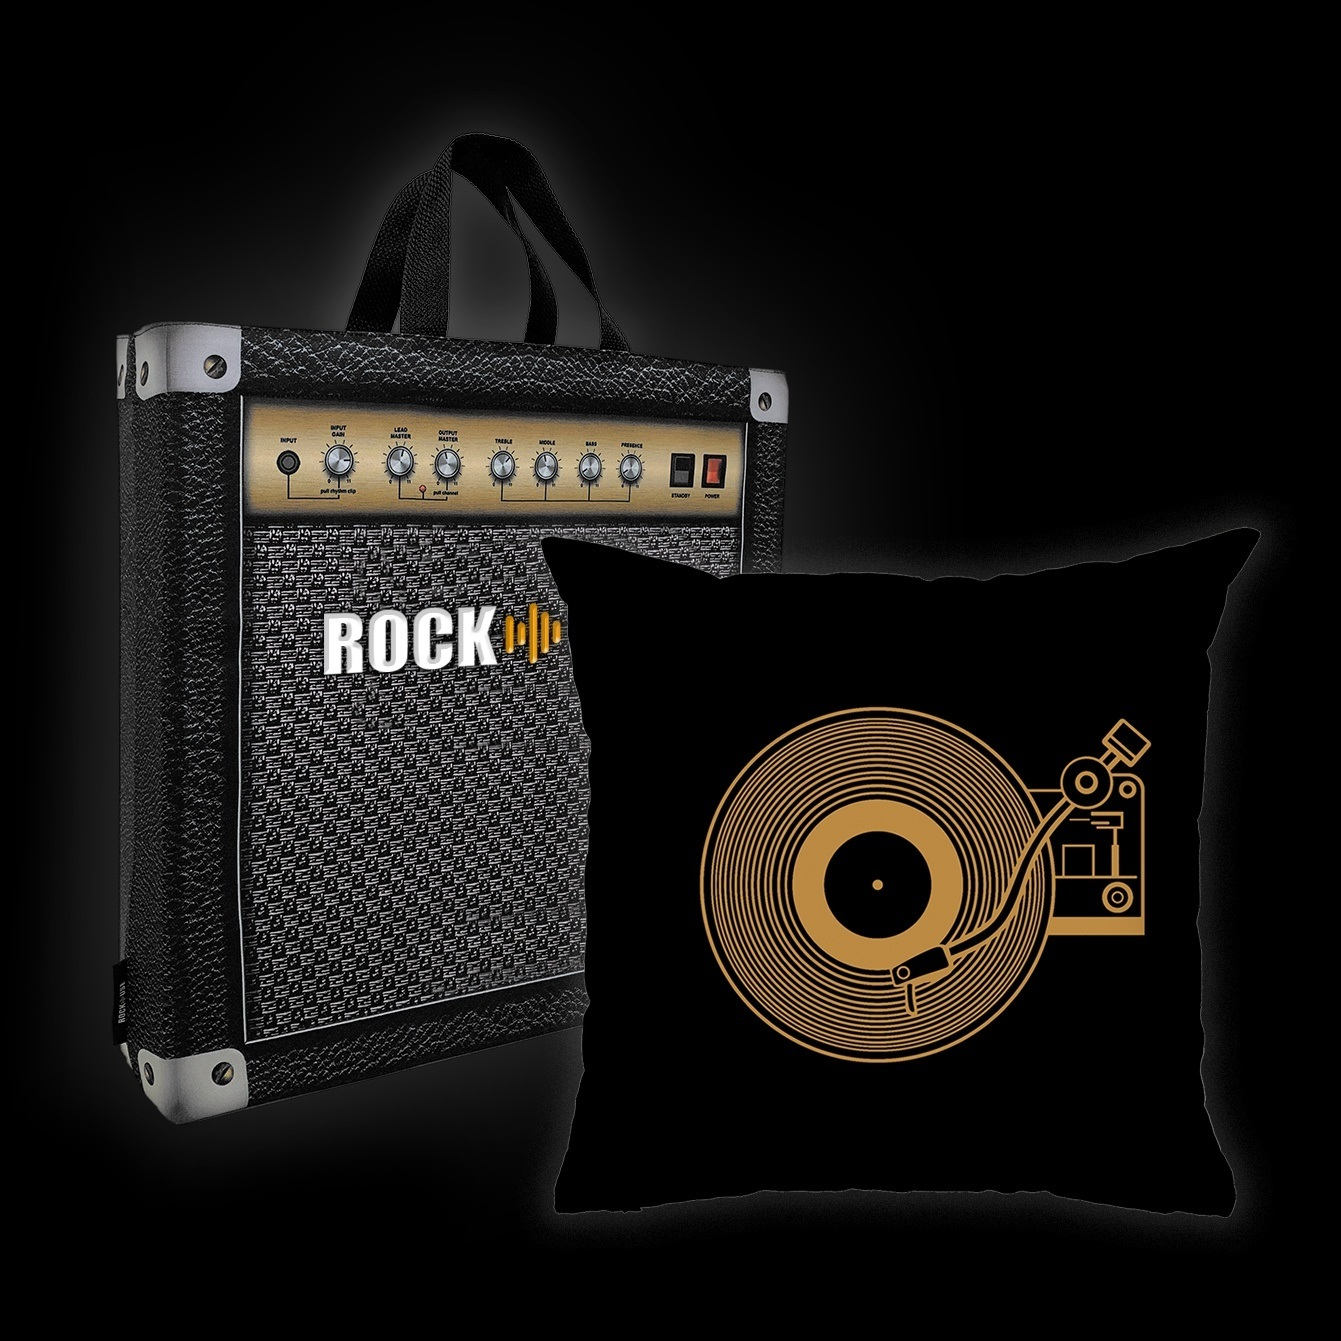 Kit Almofada & Sacola Rock Use - Vitrola